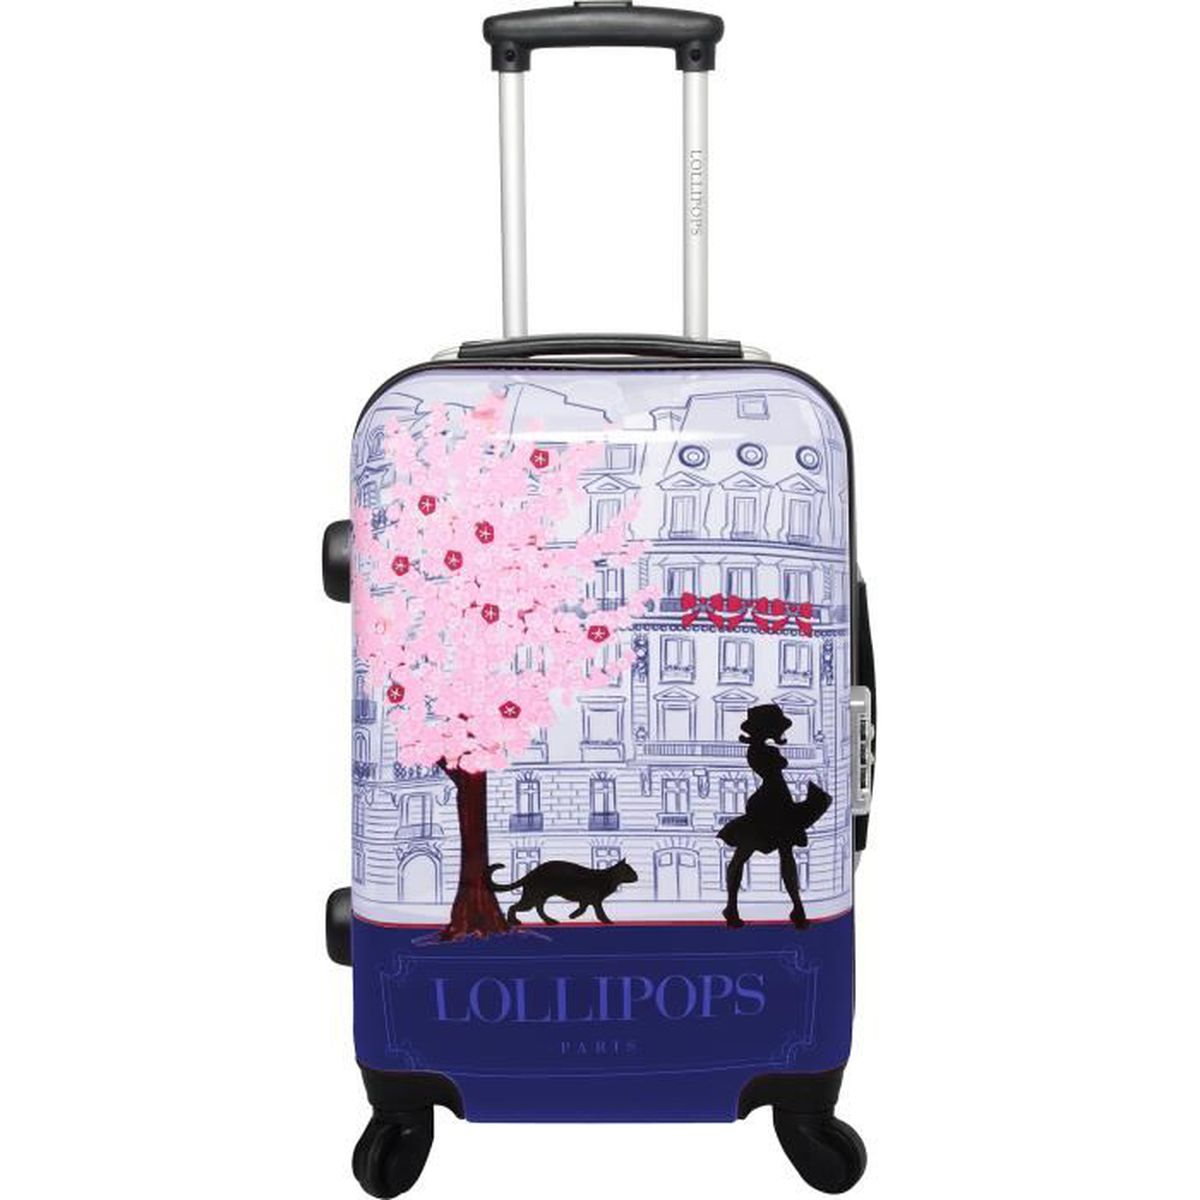 lollipops valise trolley rigide abs polycarbonate 4 roues 75cm navy navy achat vente. Black Bedroom Furniture Sets. Home Design Ideas